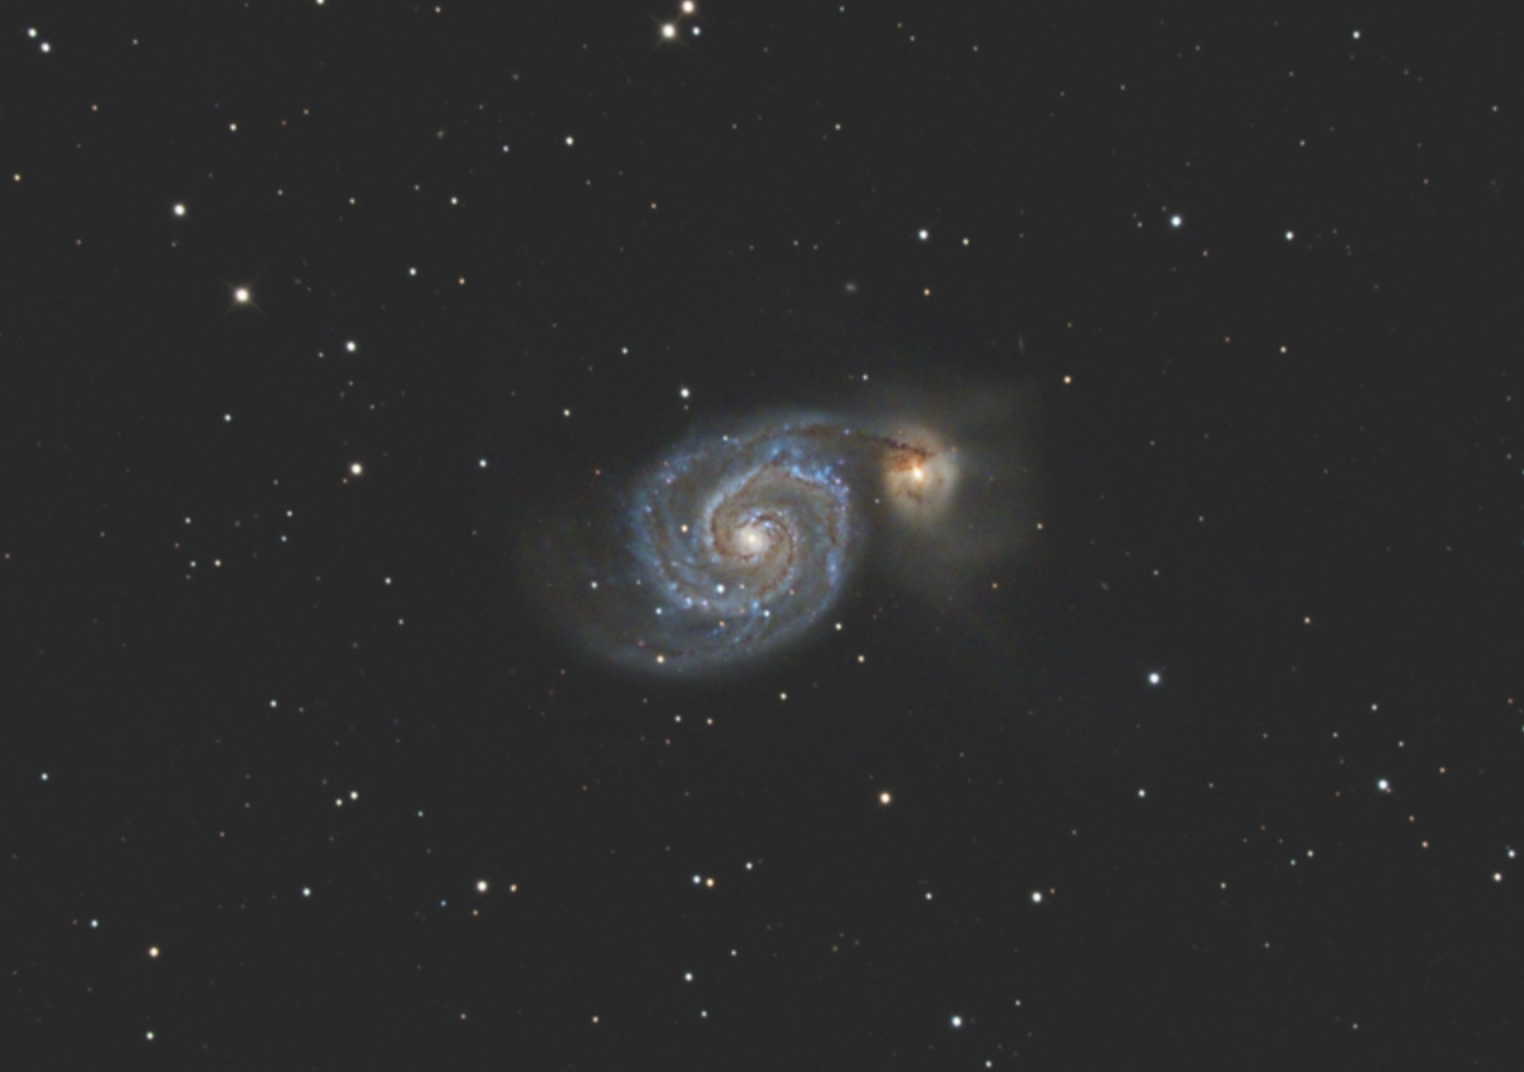 Cropped view of M51.